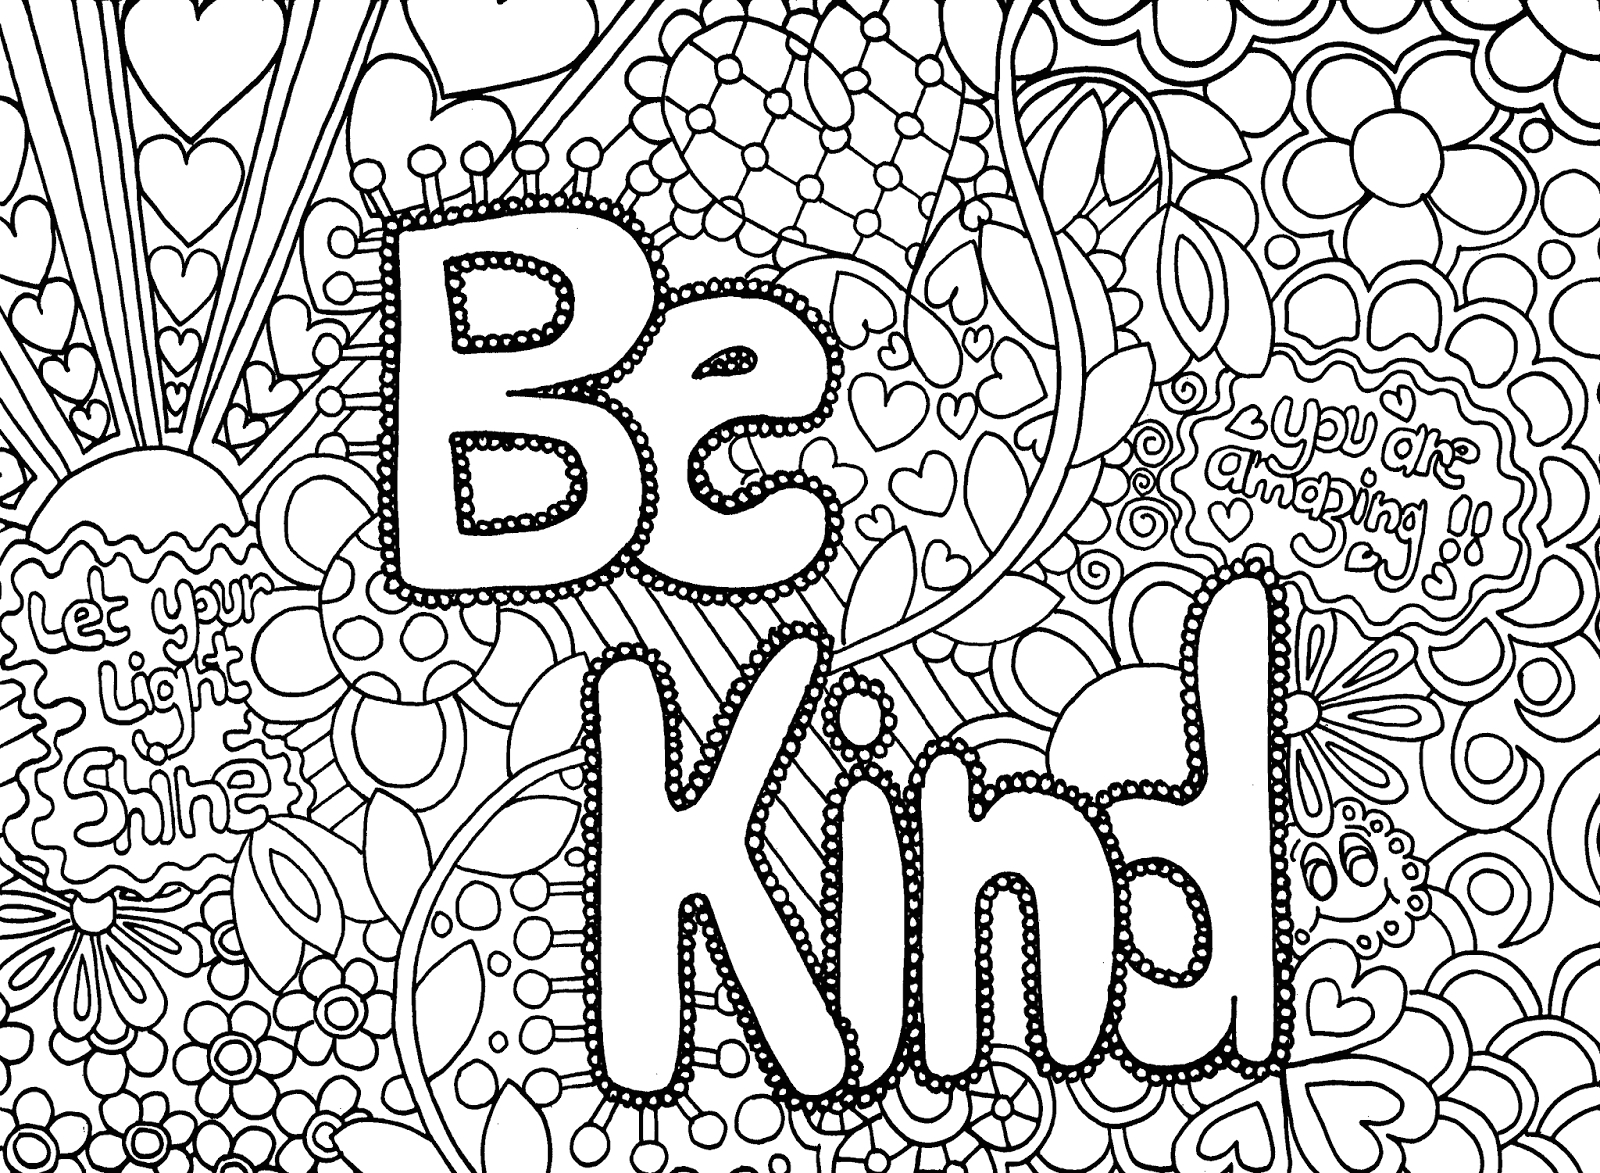 Free Coloring Pages for Adults Printable Hard to Color Hard Coloring Pages for Adults Best Coloring Pages for Kids